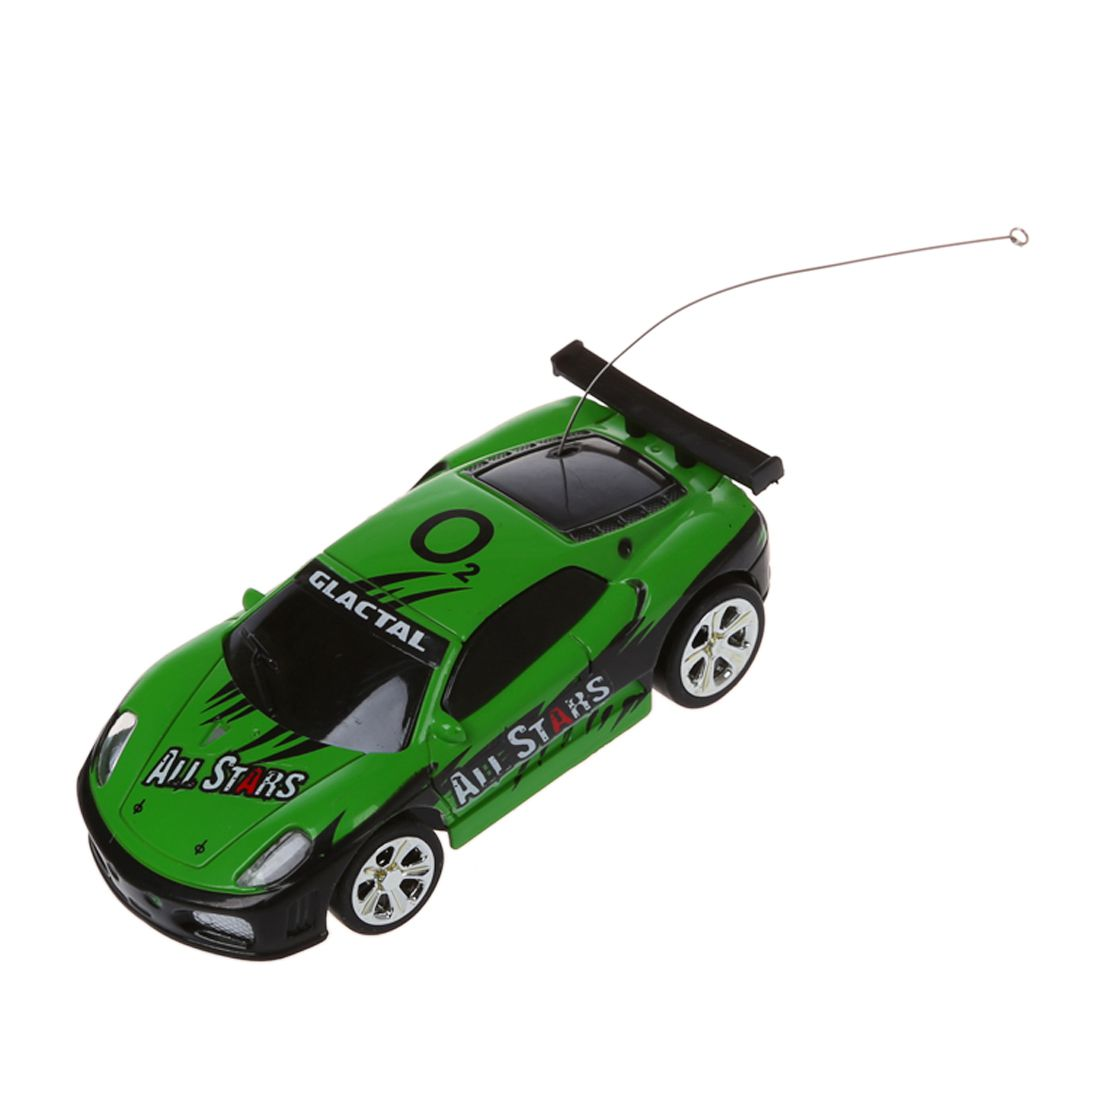 mini rc remote controlled car racing car toys in the beverage can 1 58 gre t7q5 ebay. Black Bedroom Furniture Sets. Home Design Ideas